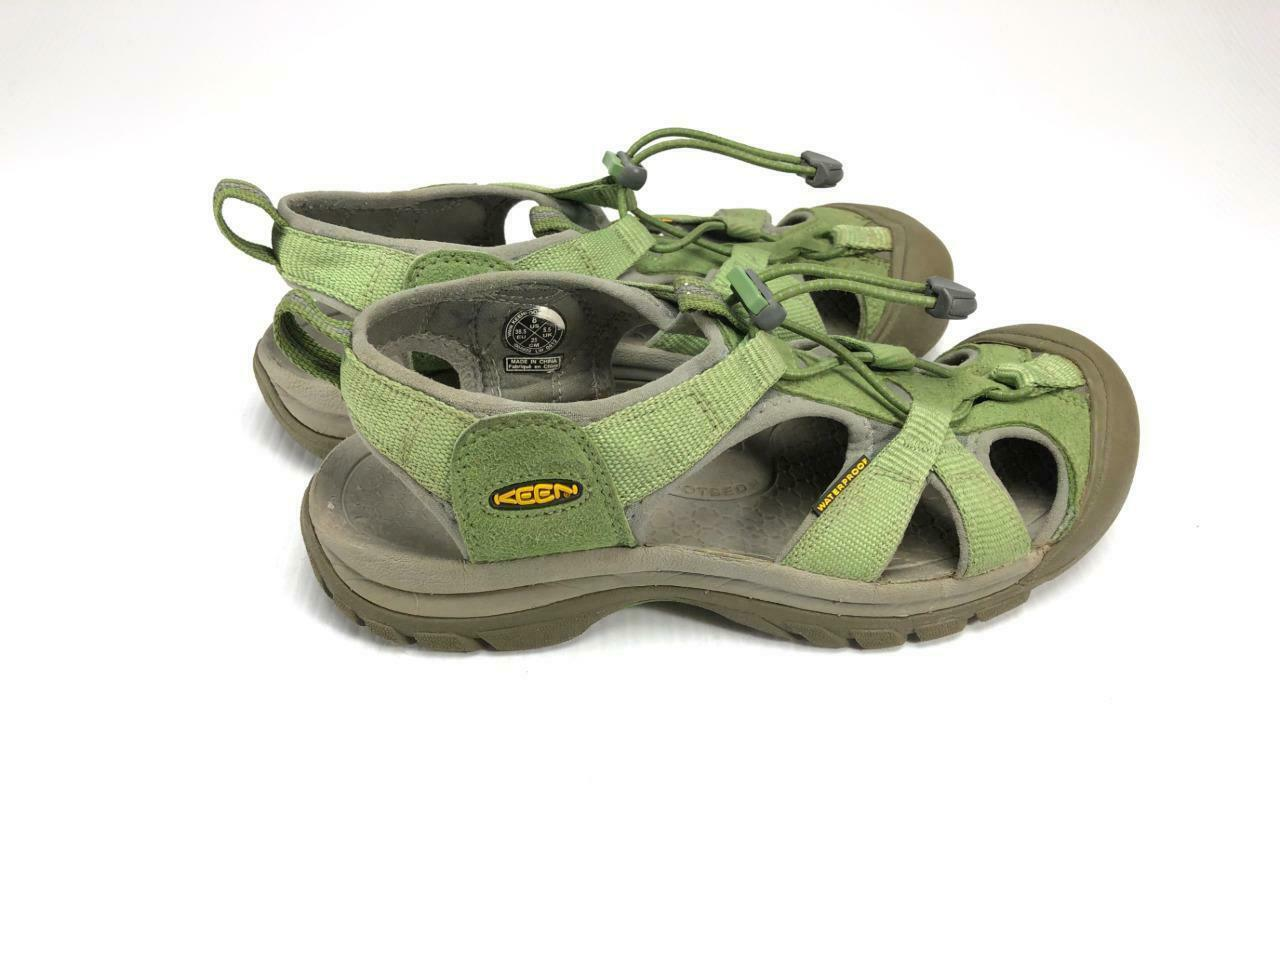 Keen Venice H2 water sandals in green womens 8 image 2